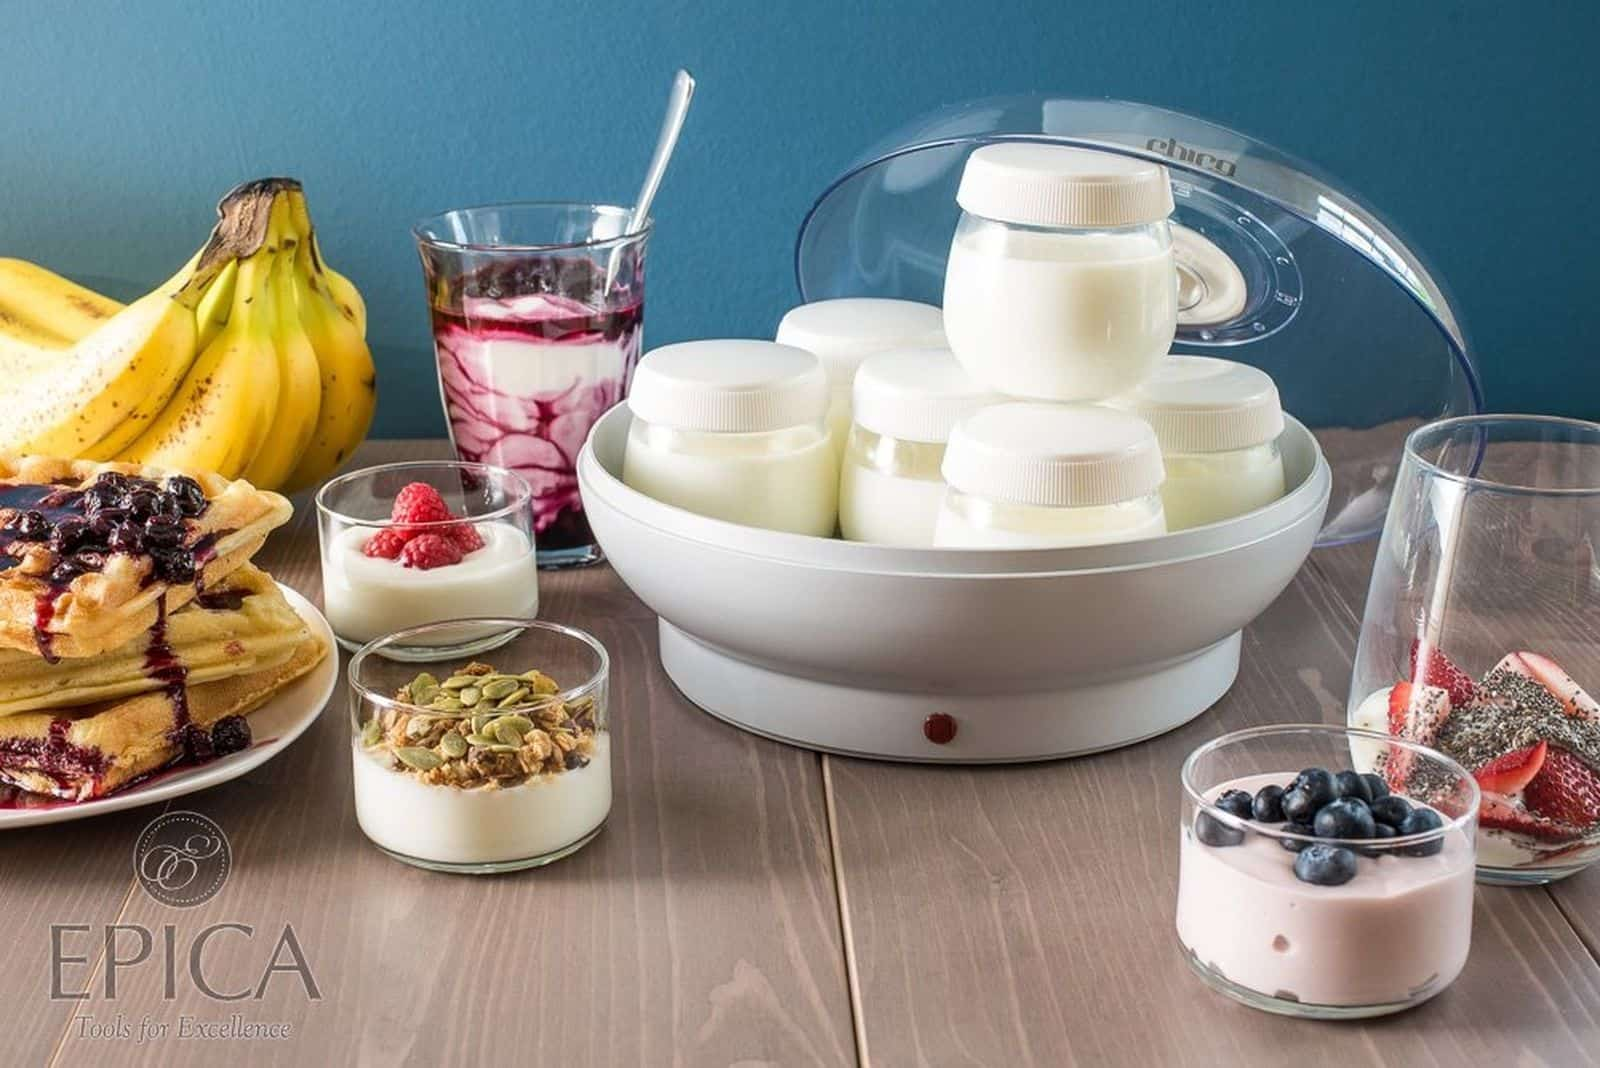 Epica Yogurt Maker Display